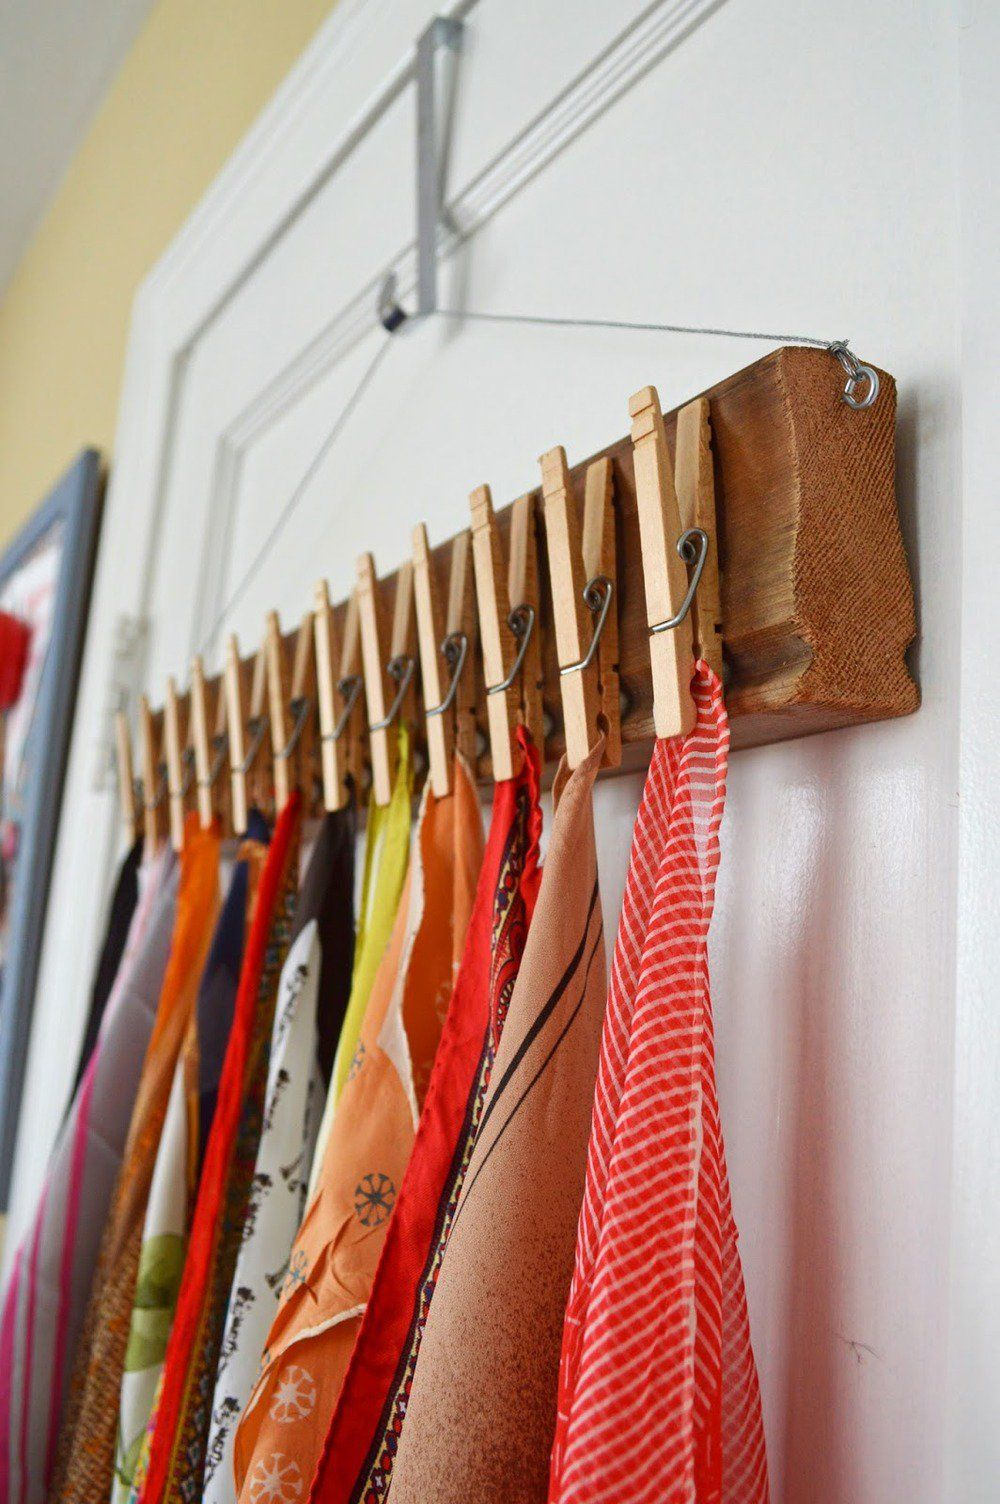 11 diy ways to contain your clutter without compromising your style diy clothespin wall organizer fun and inexpensive idea for an entryway or to hang scarves solutioingenieria Images